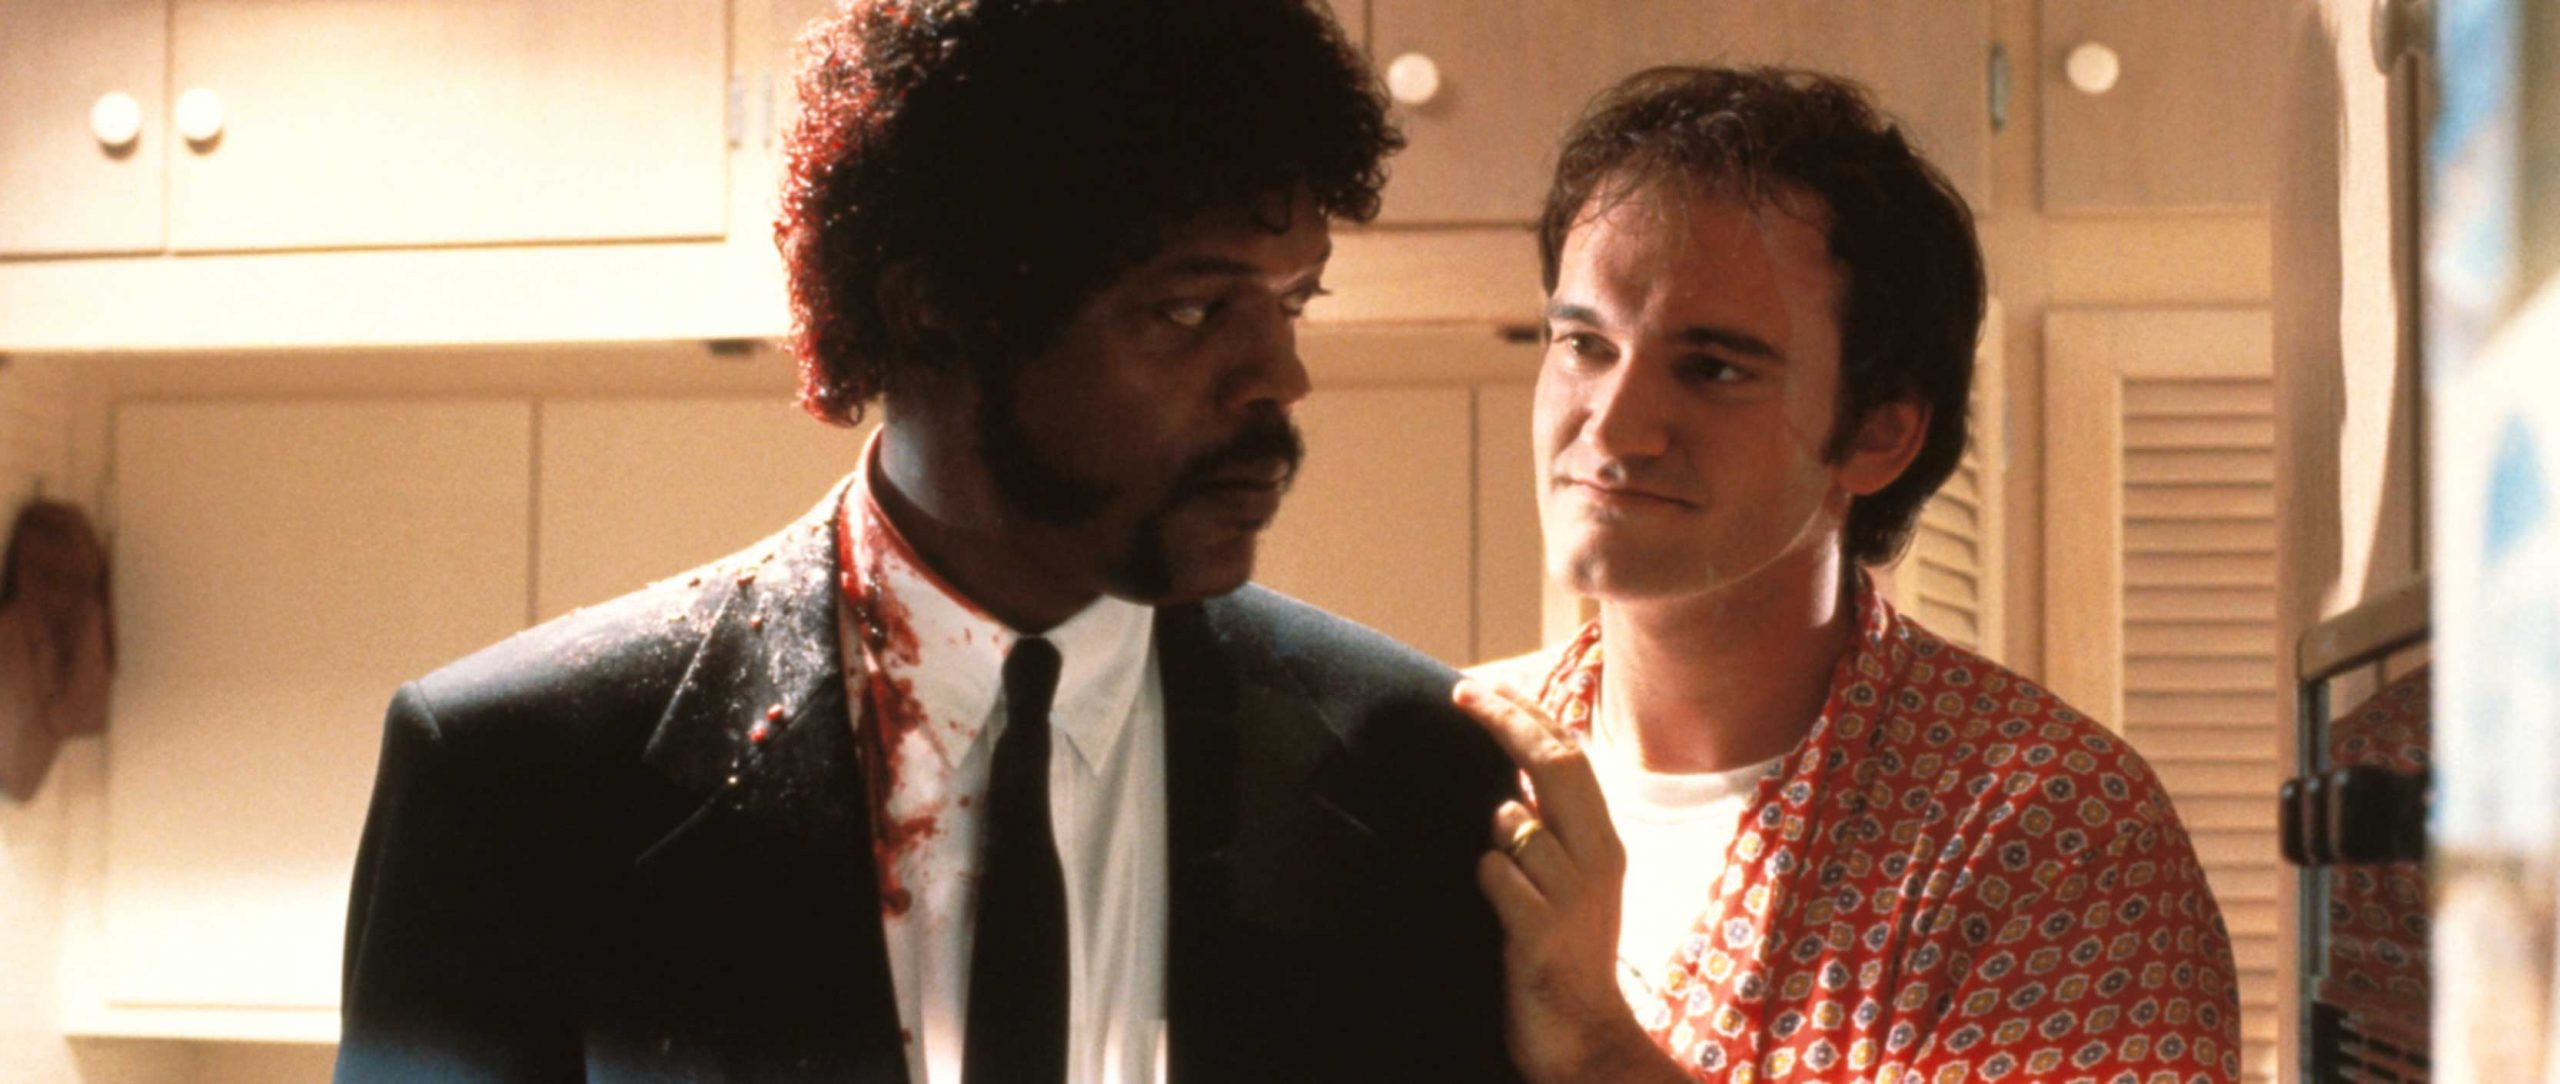 ctxjj54qzwnadhwa8nub scaled 20 Things You Probably Didn't Know About Quentin Tarantino